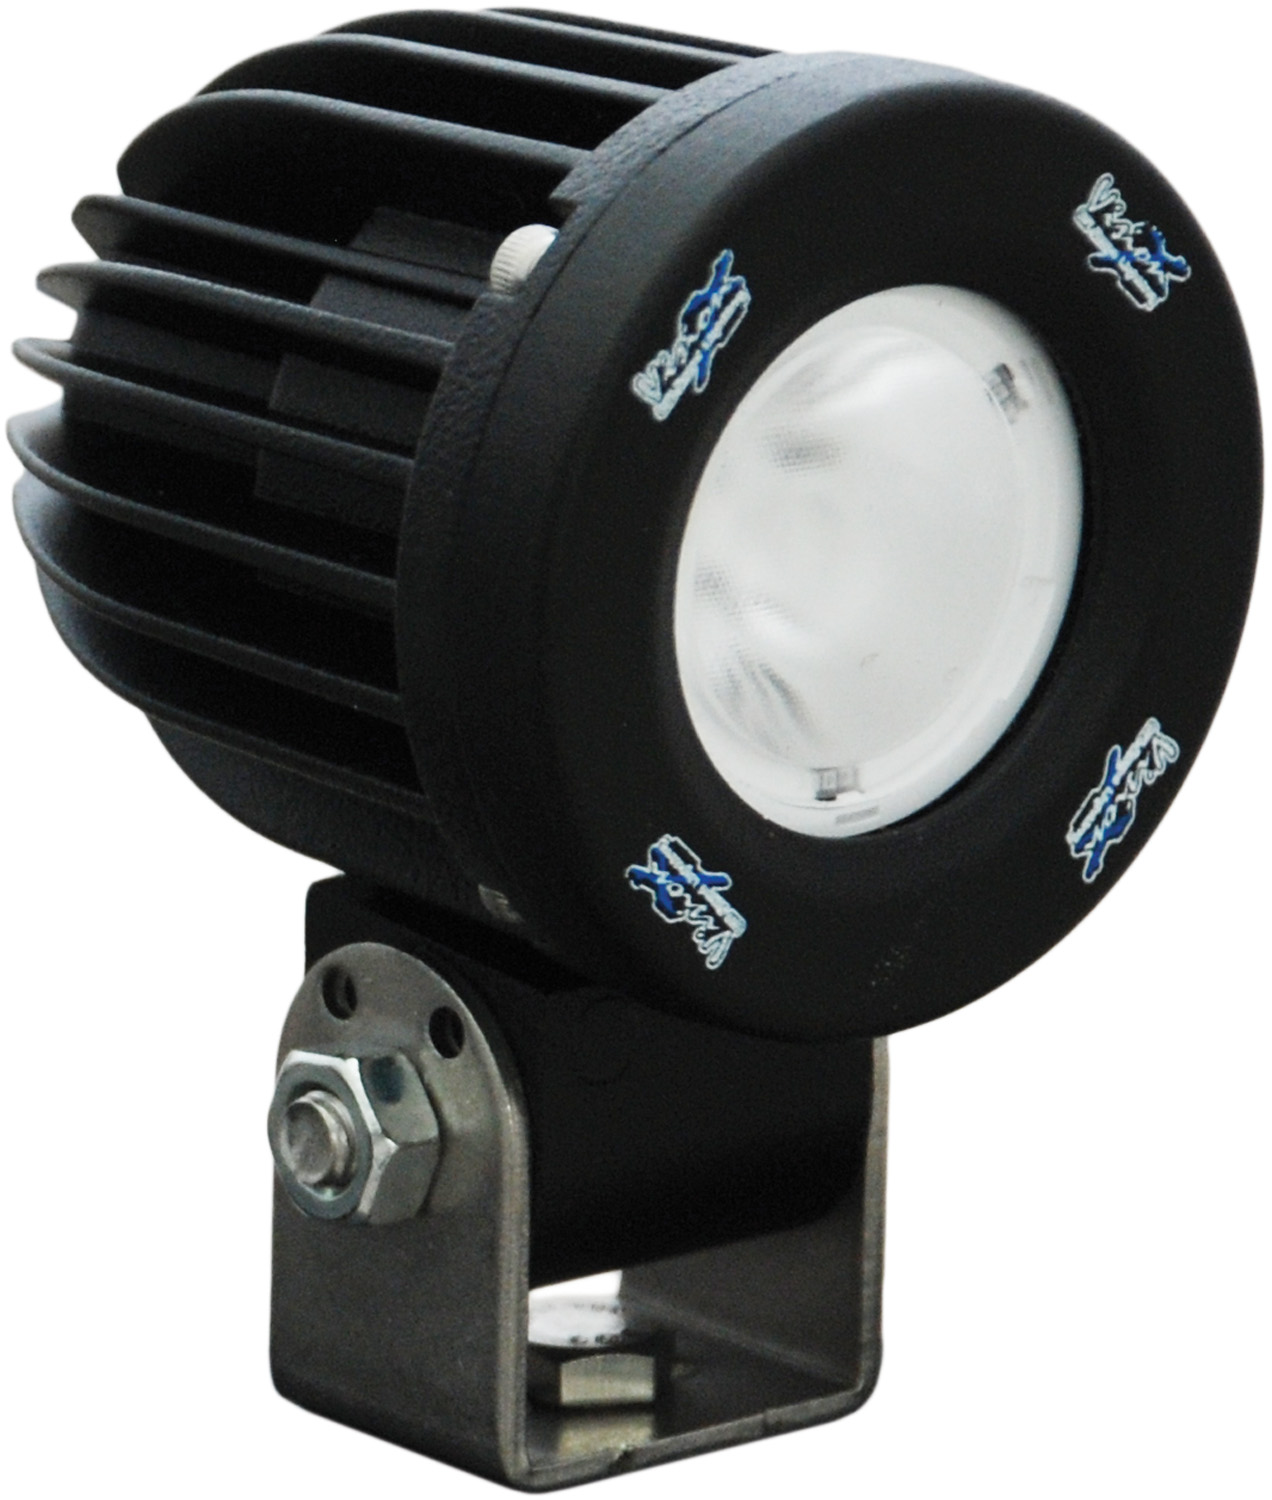 "2"" 10 WATT SOLSTICE SOLO PRIME LED 20 NARROW POD"